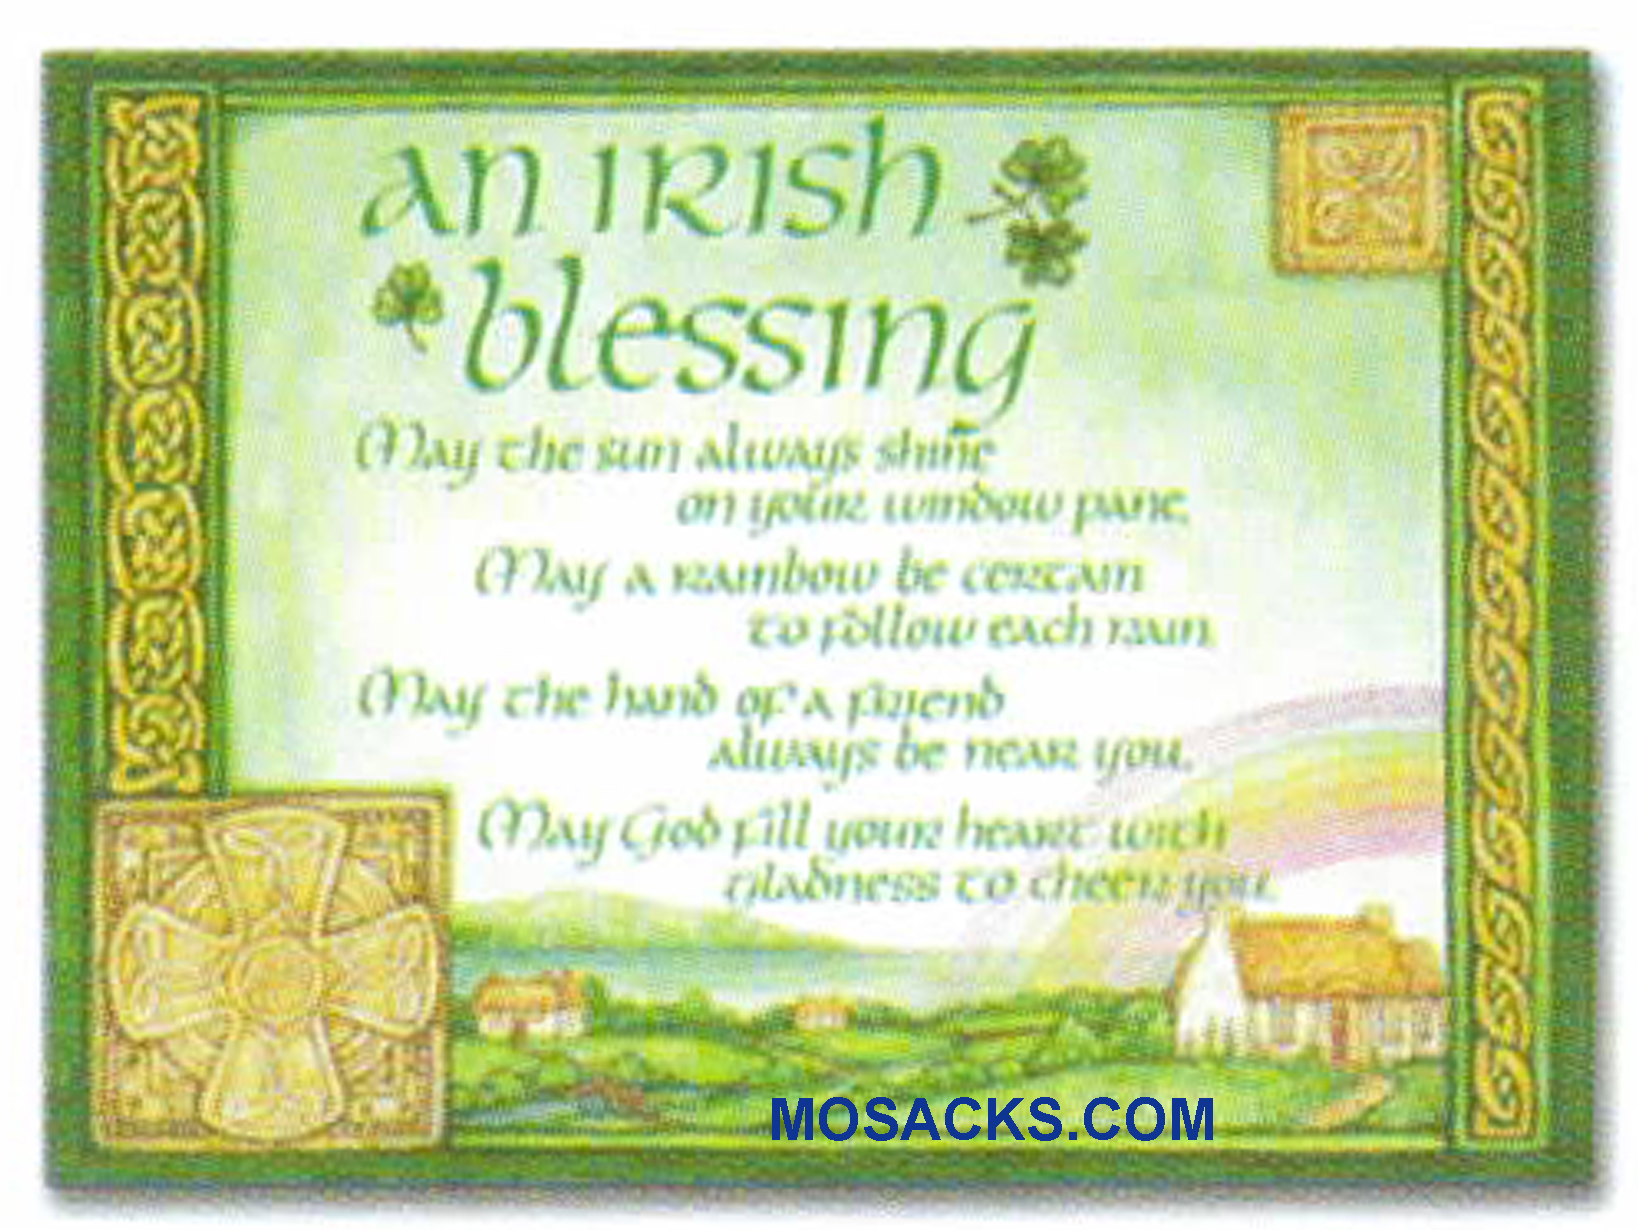 An Irish Blessing May The Sun Always Shine On Your Window Pane Greeting Card -WCA5099